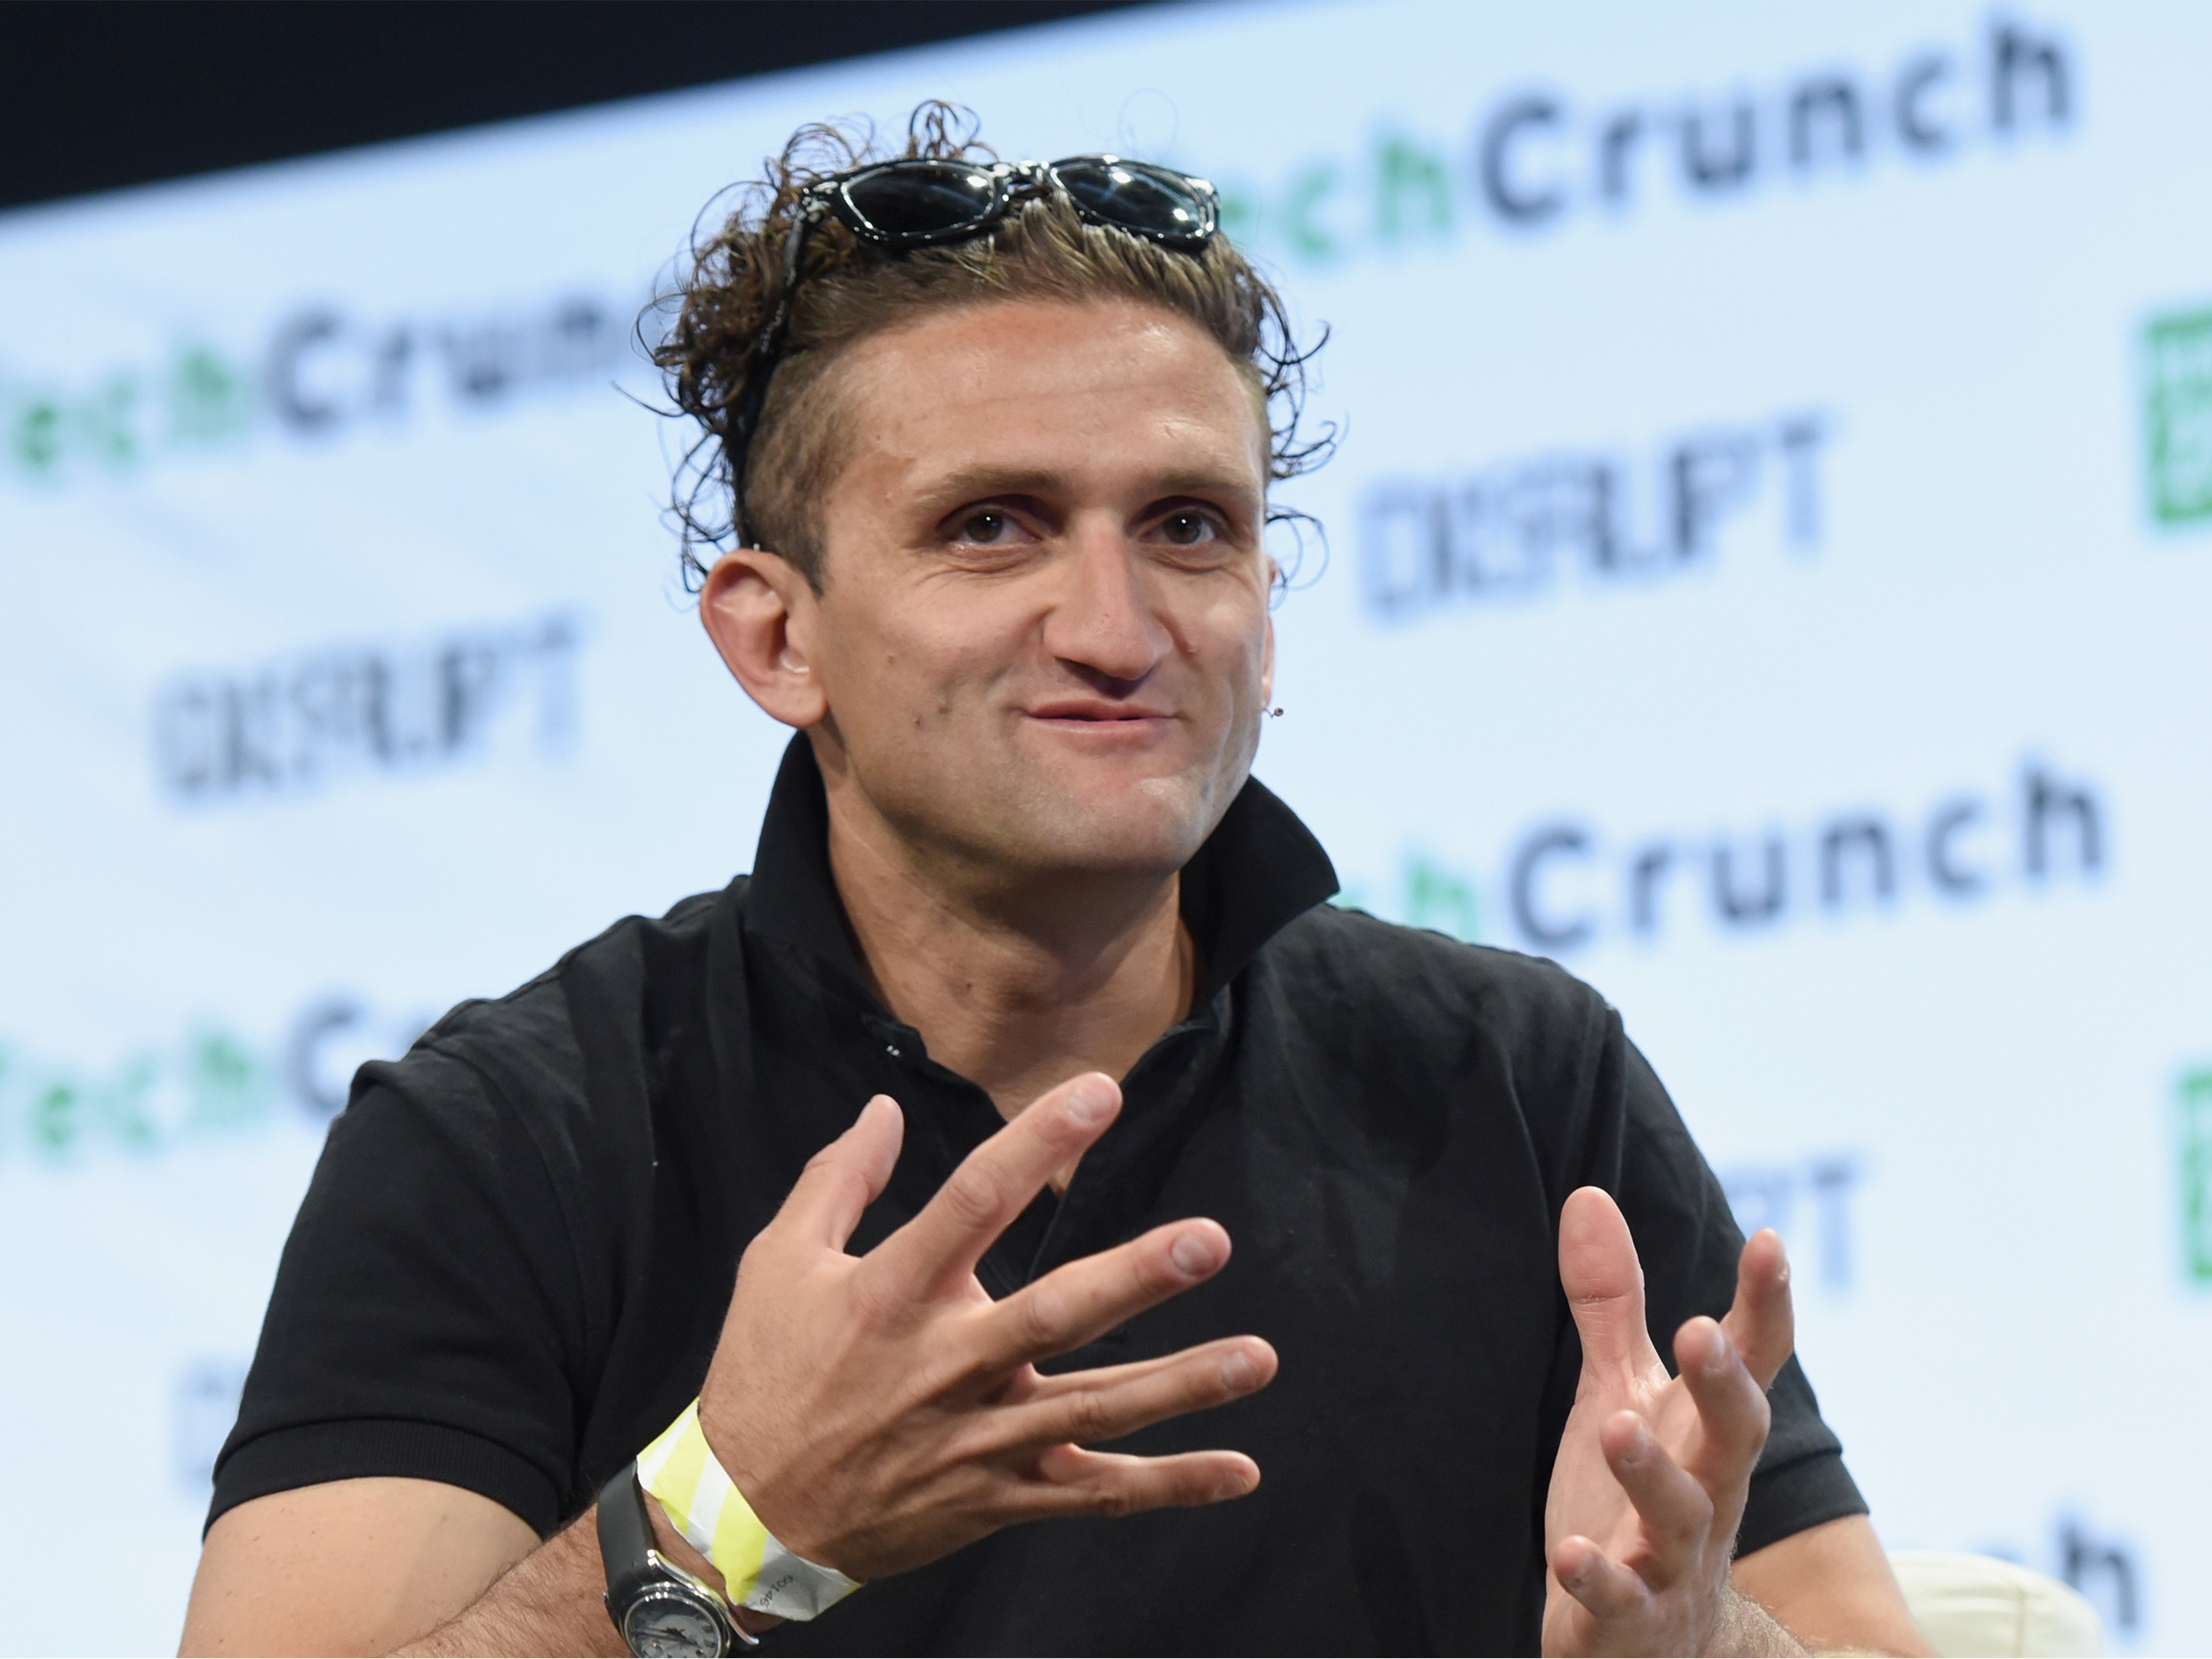 YouTube star Casey Neistat.